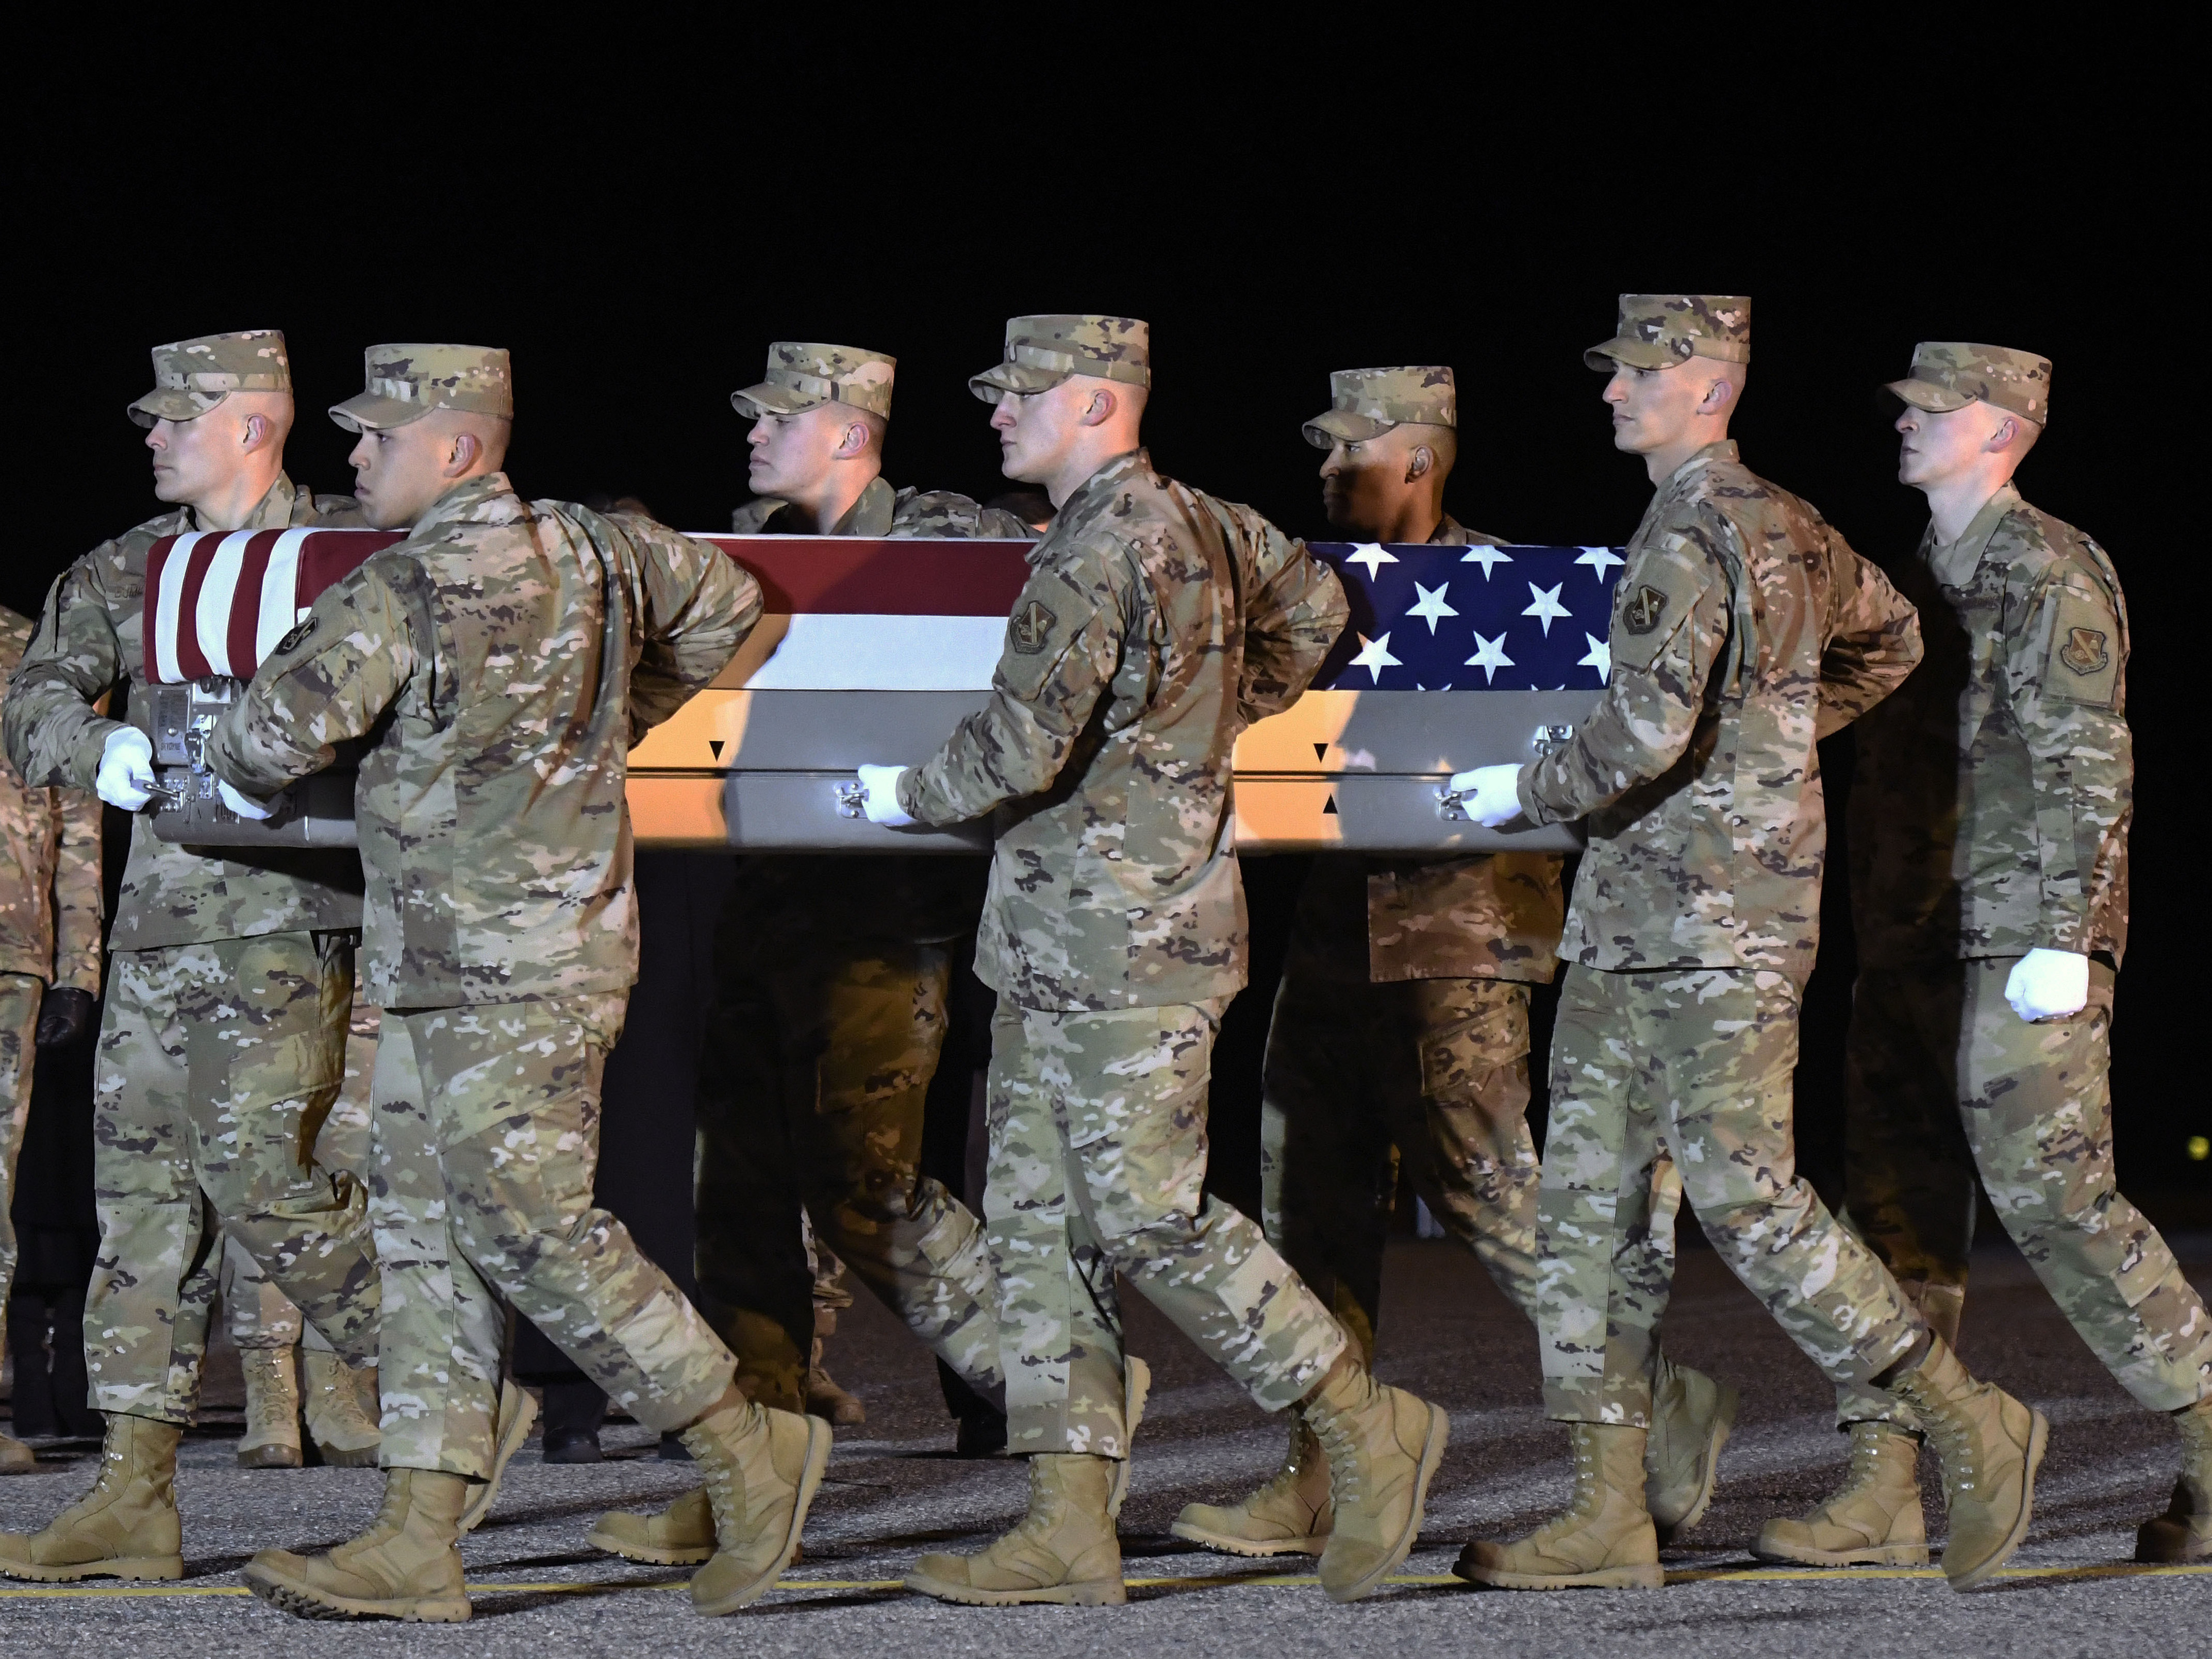 Engine Failure And Crew Error Responsible For Fatal 2020 Crash in Afghanistan